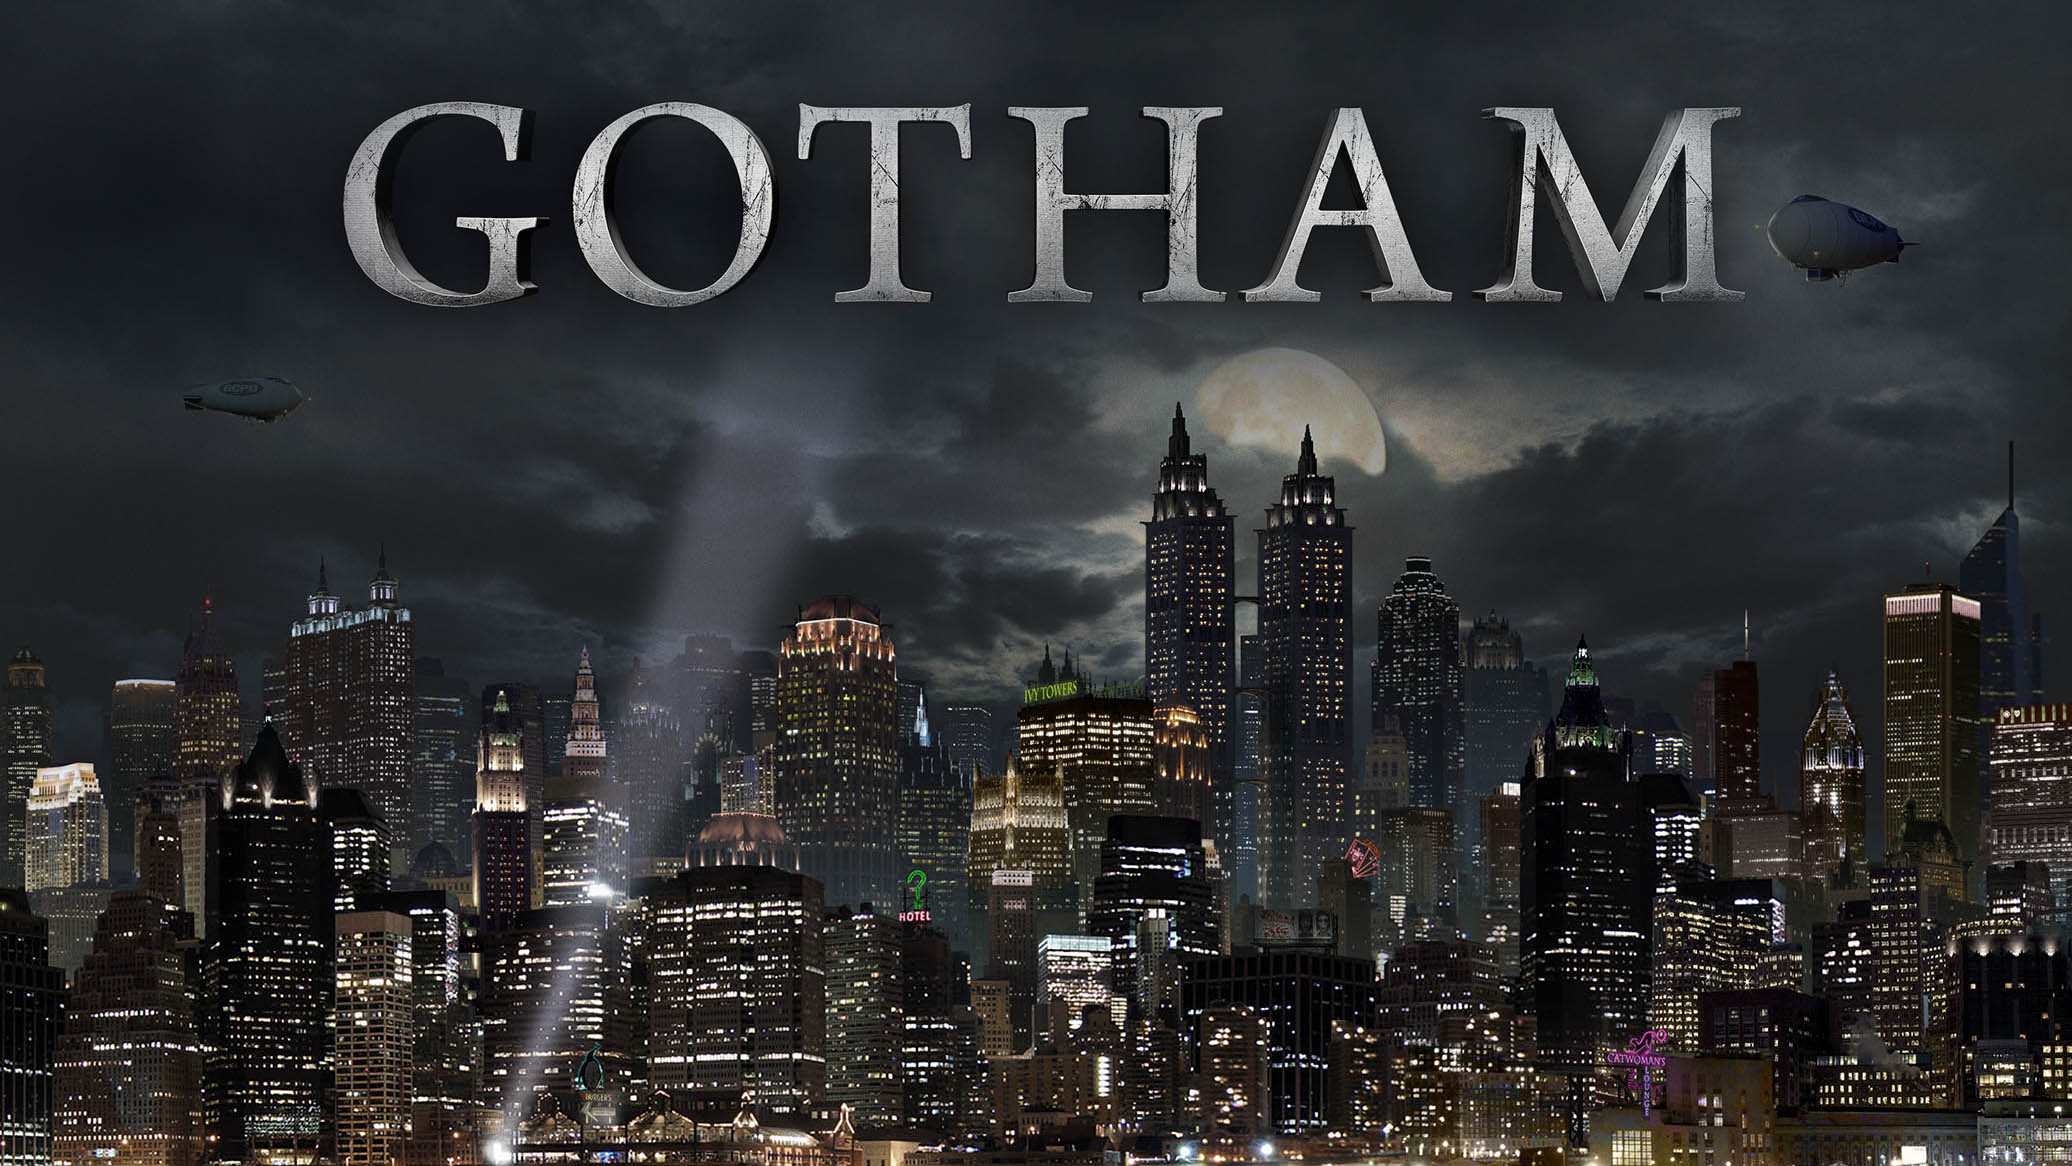 Gotham city hd wallpaper wallpapersafari for In the city wallpaper